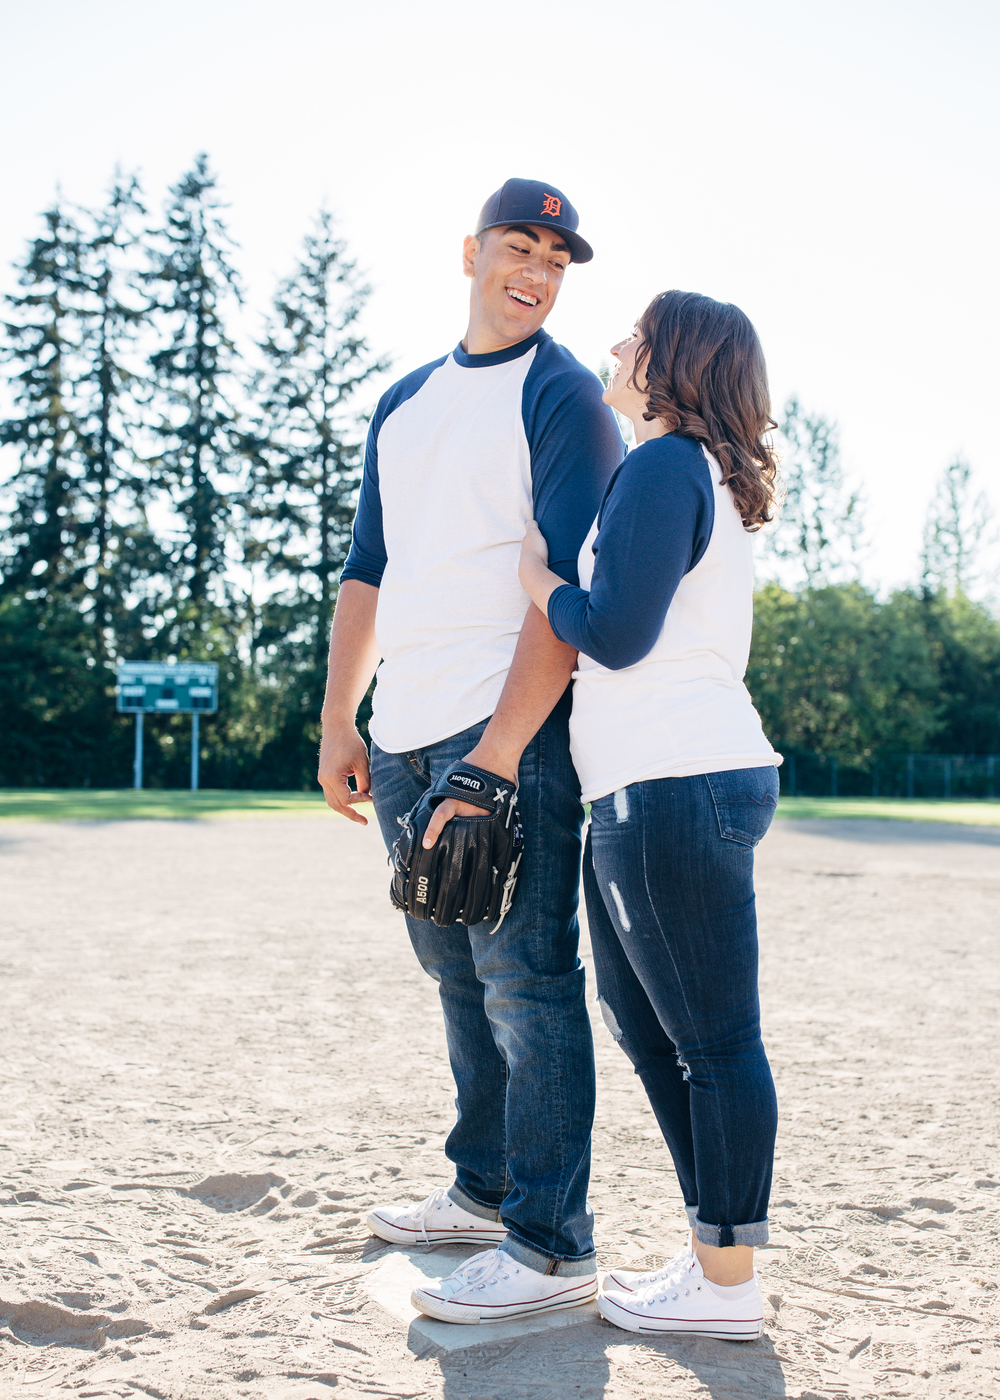 Out final location was a local baseball field. Alec played all throughout high school and has since been drafted so they both wanted to capture their interest and involvement with the sport.